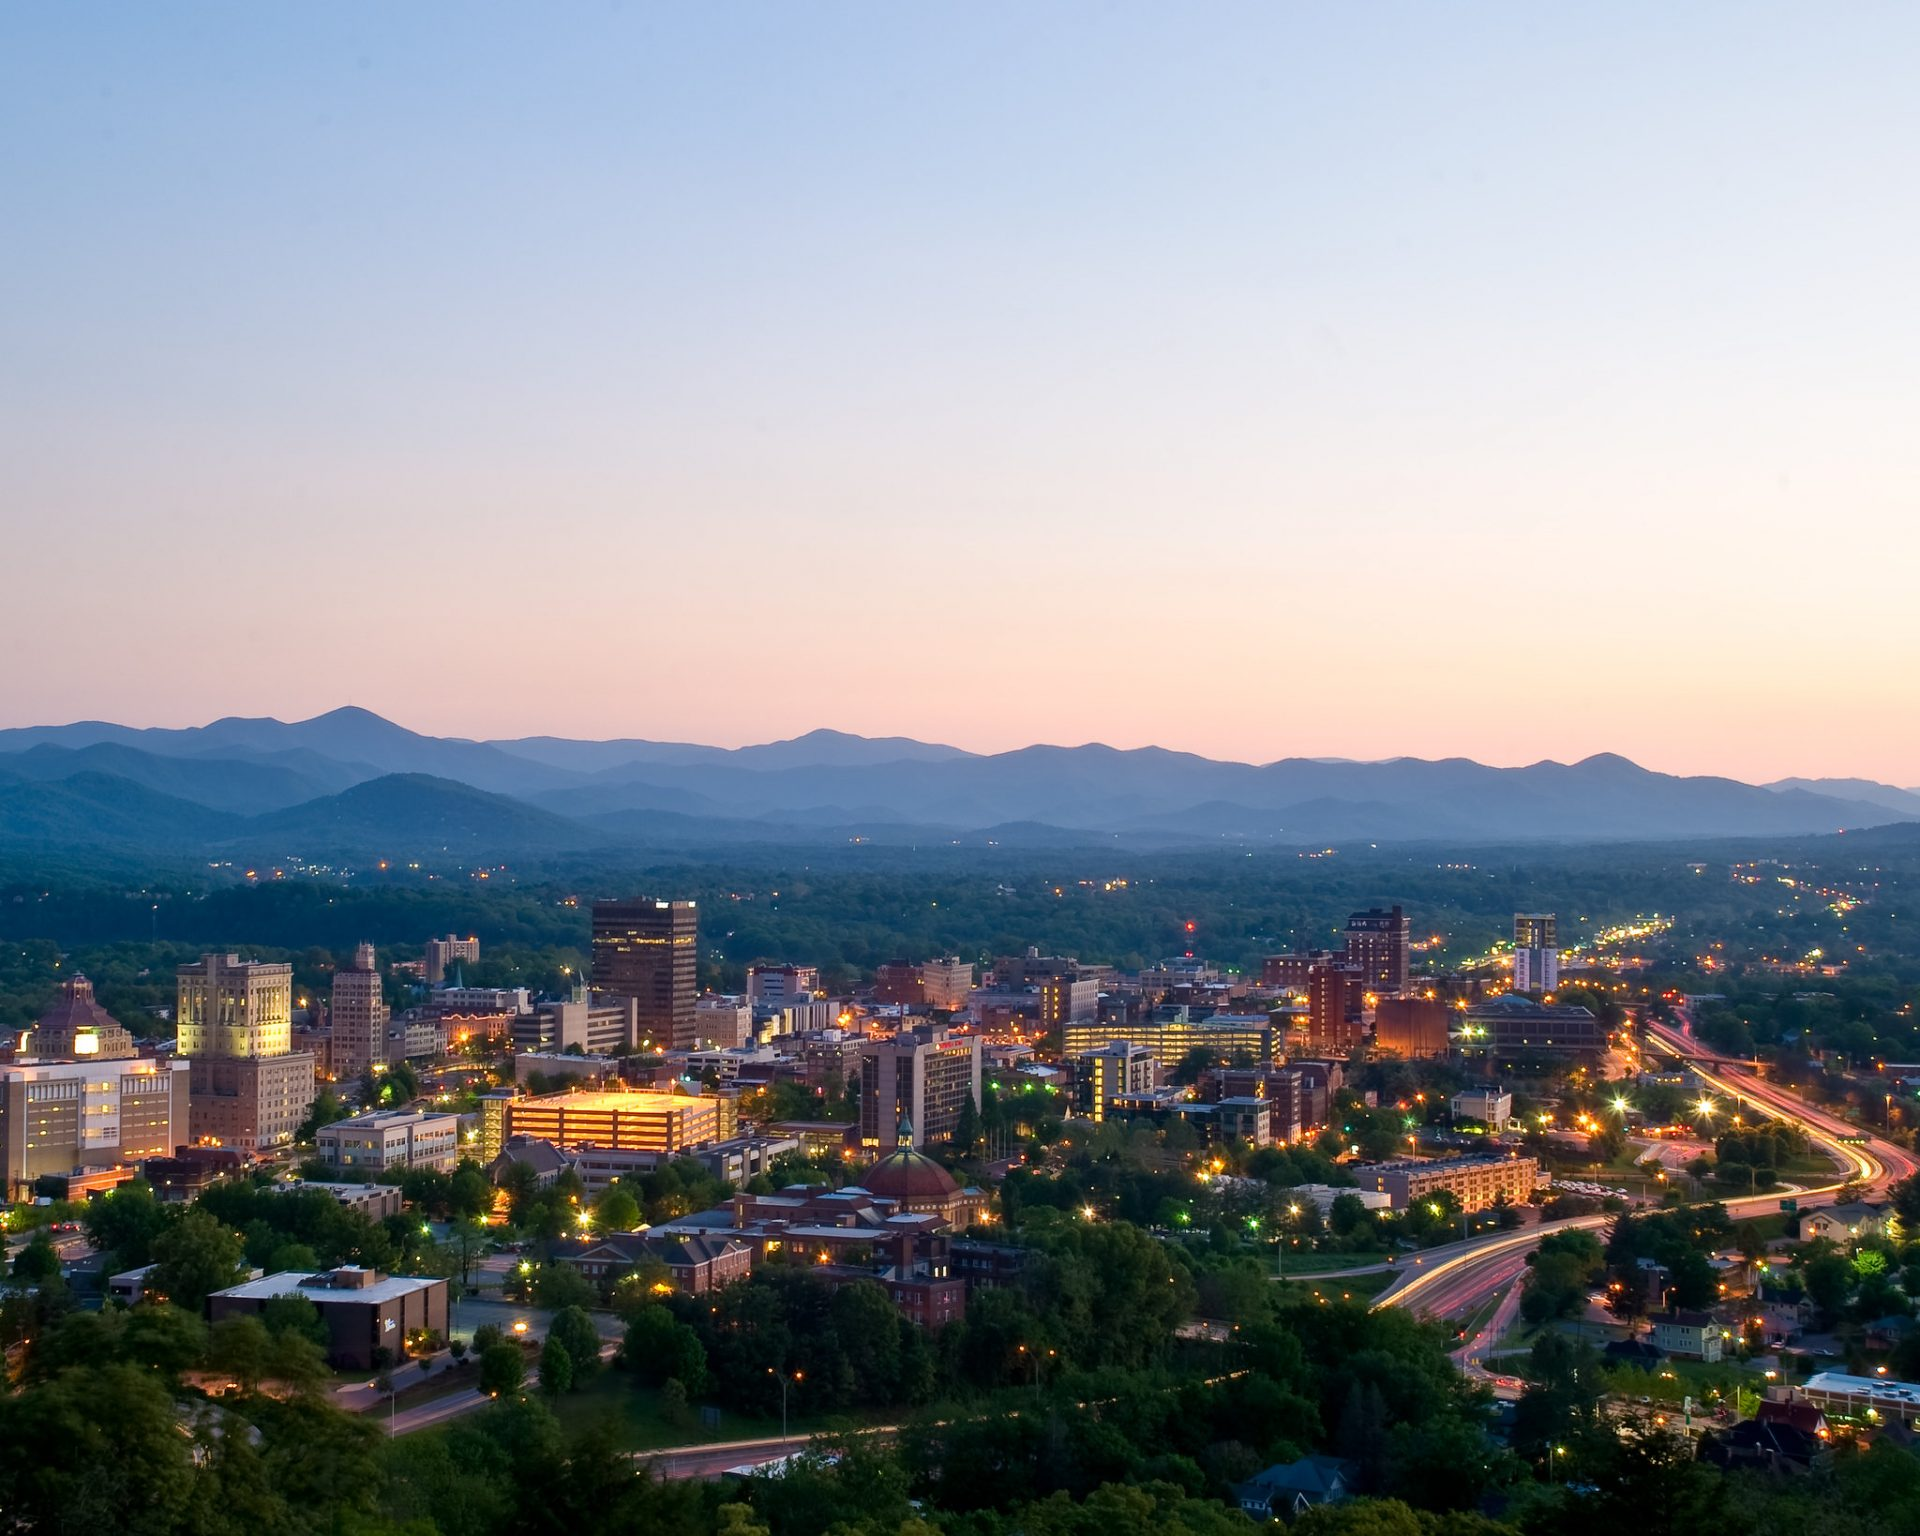 3 things to see and do in Asheville, North Carolina